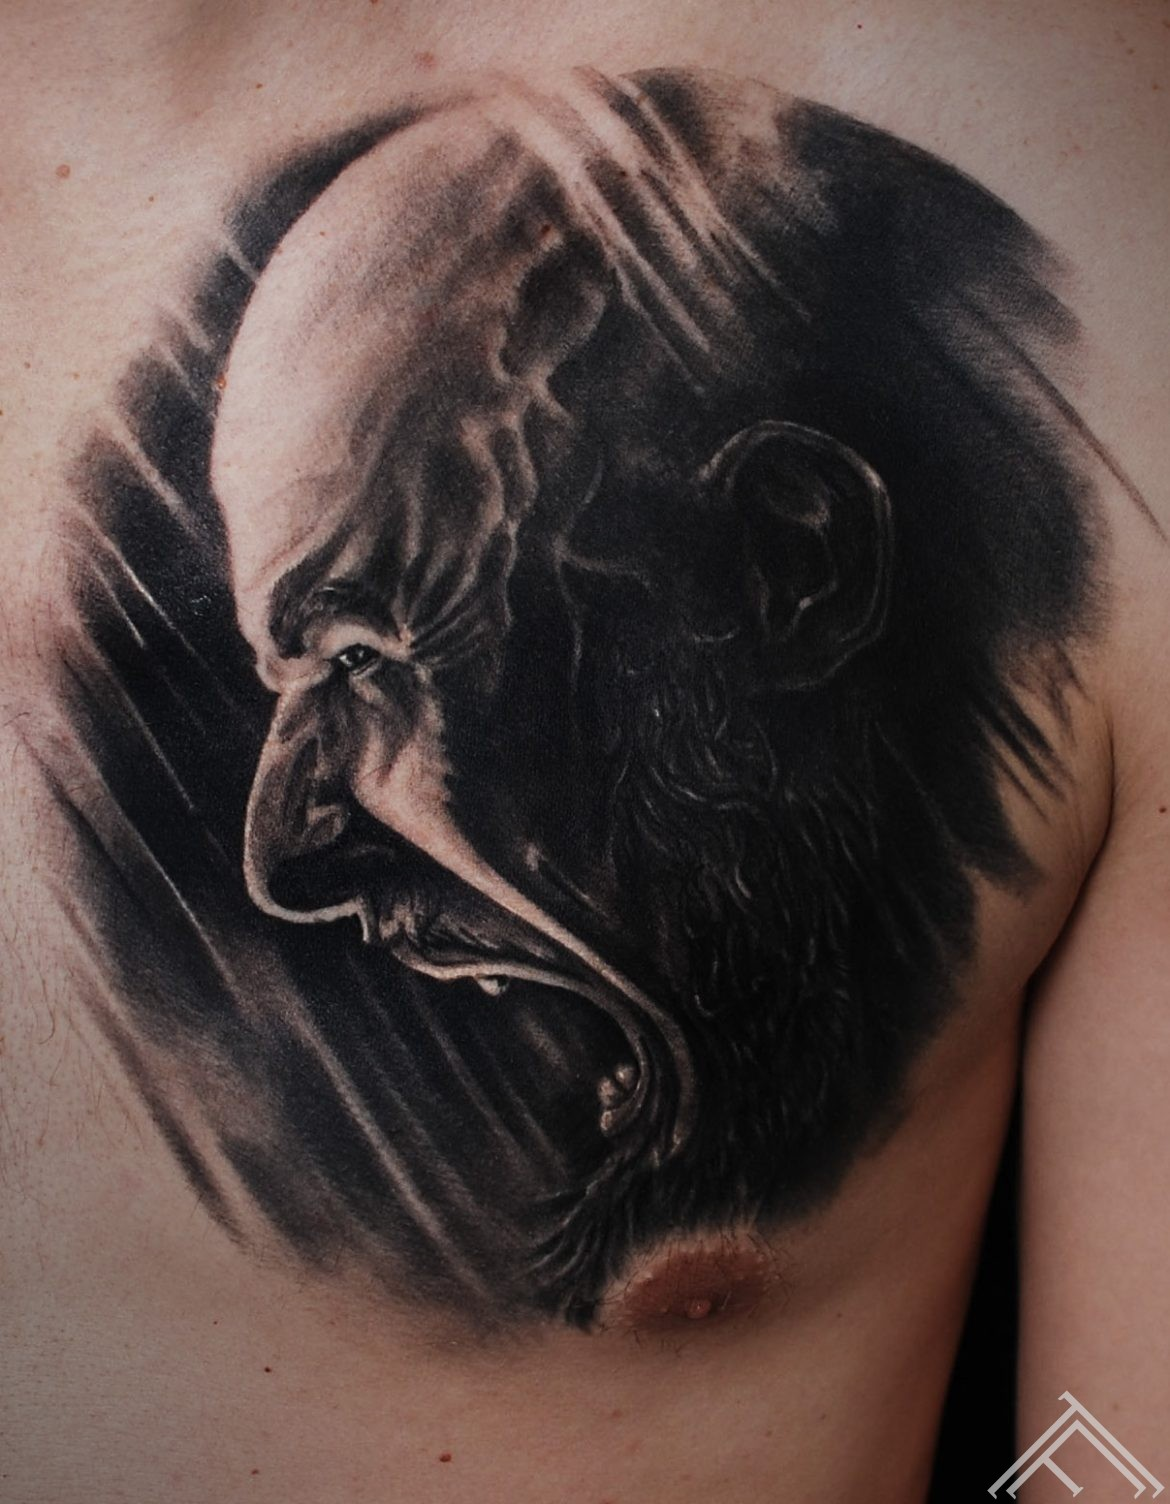 screaming-man-tattoo-tattoofrequency-art-riga-marispavlo-TF